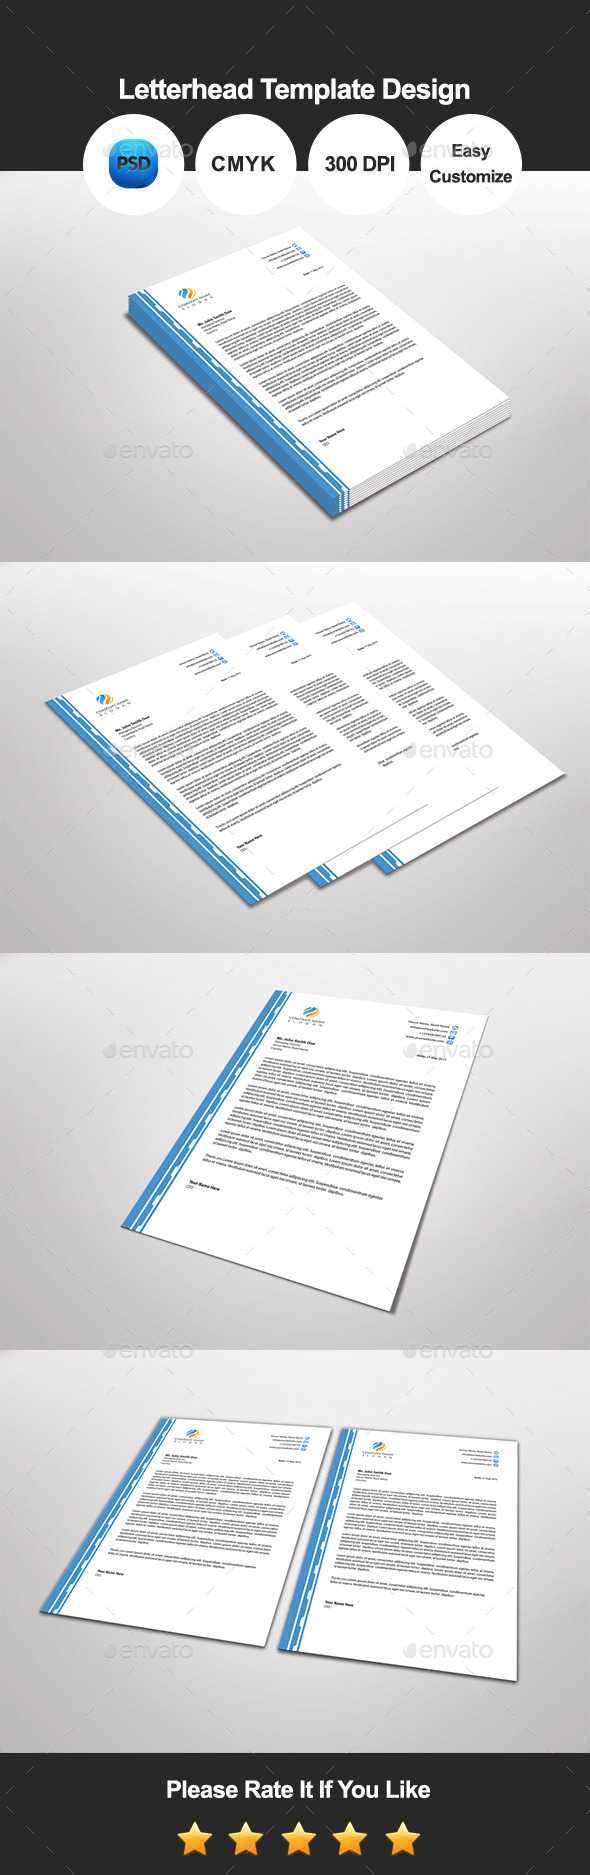 Txian Letterhead Template Design - Proposals & Invoices Stationery